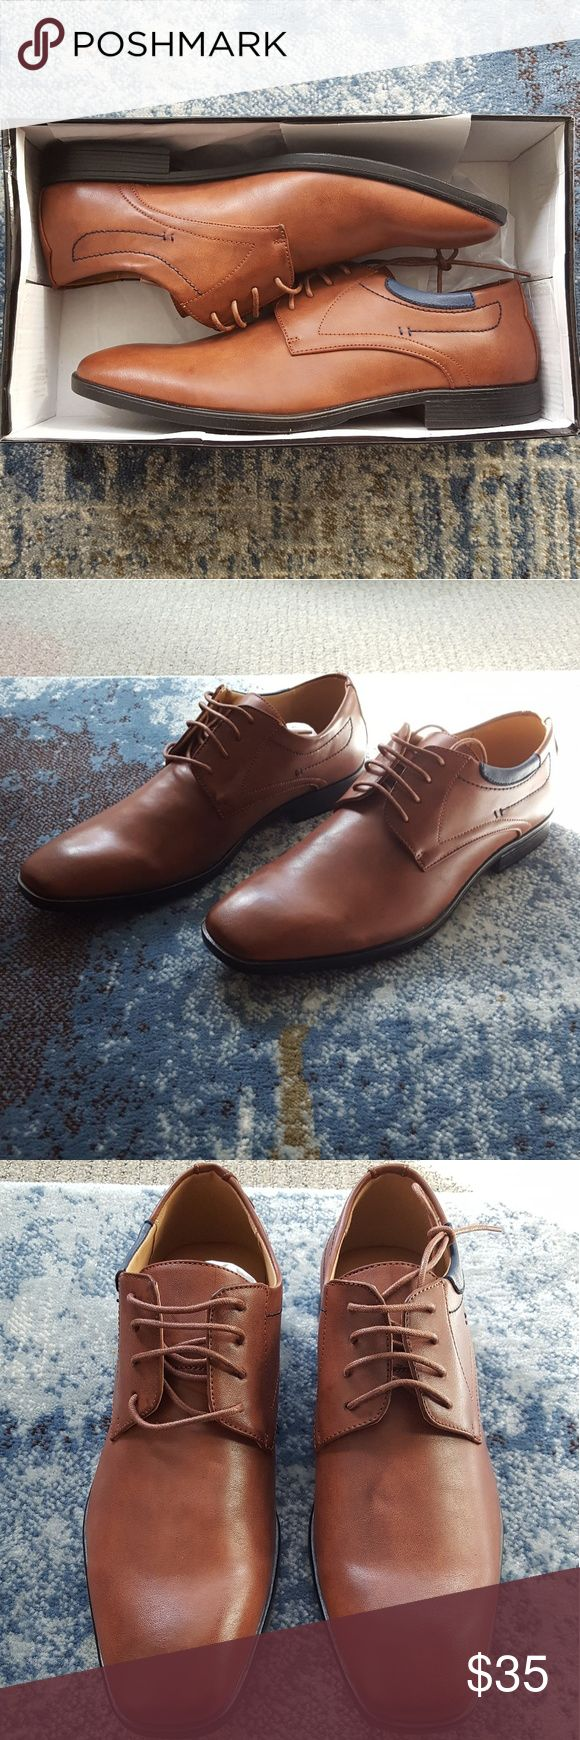 NWT Men's Steve Madden Dress Shoes NWT Men's Steve Madden Dress Shoes - Size 11.  Came straight out of the shipping box from store.  No scuffs, stains, or any type markings.  Color: cognac (medium rich brown).  OPEN TO OFFERS!!! ❤ Steve Madden Shoes Oxfords & Derbys